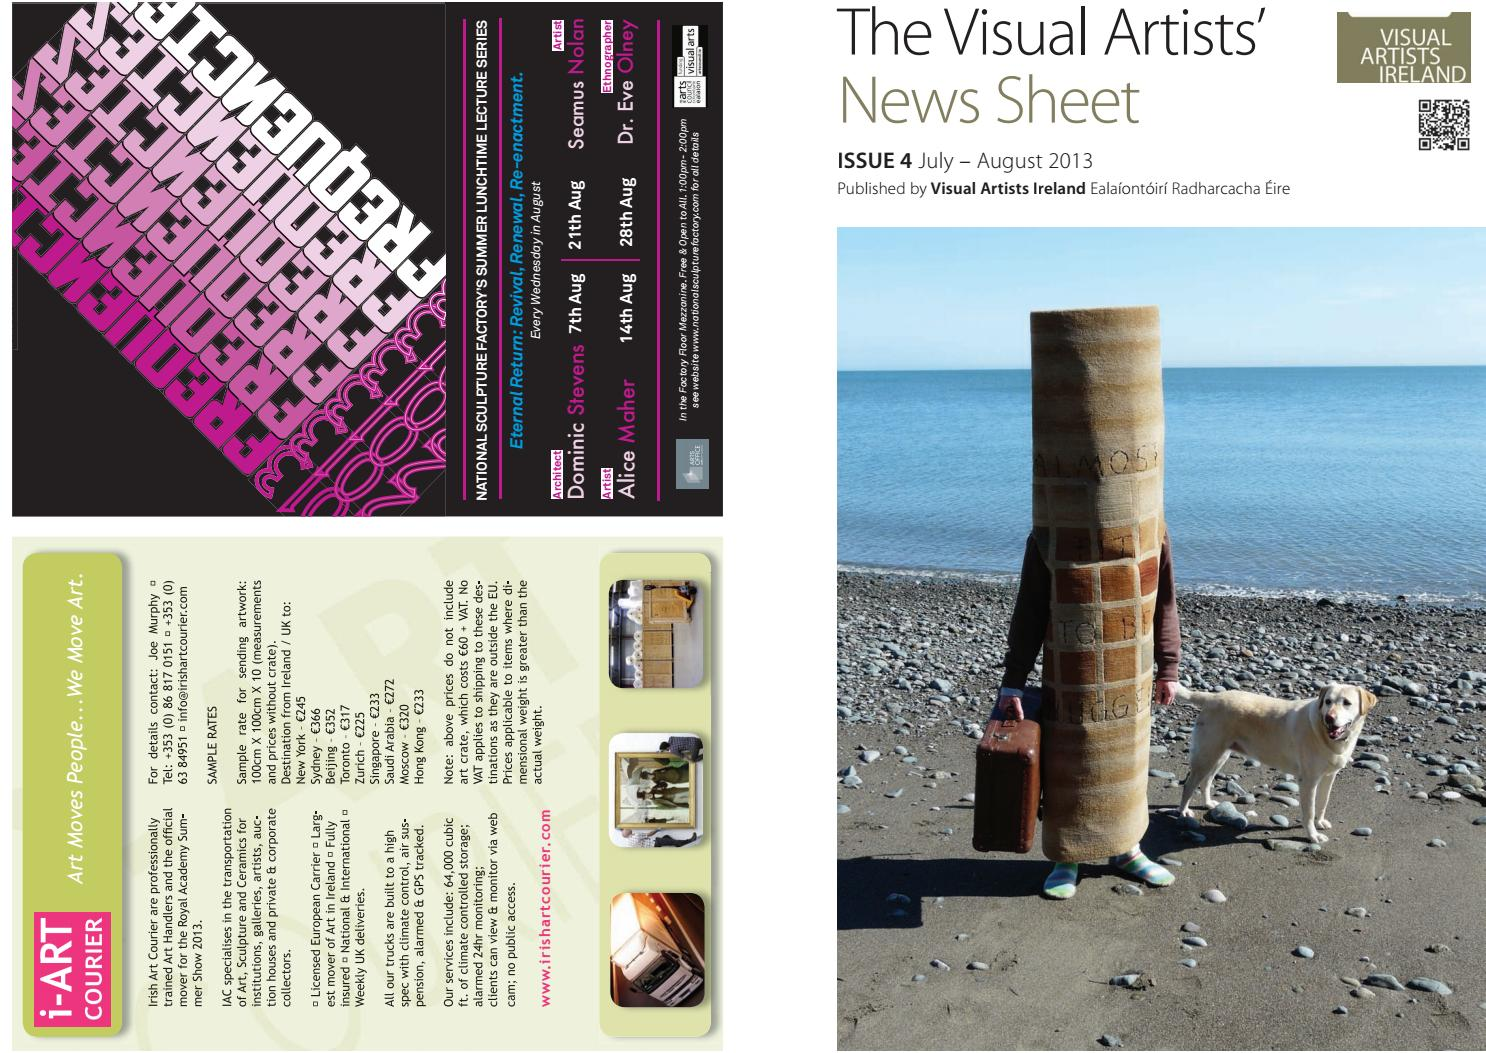 Visual Artists News Sheet 2013 July August By